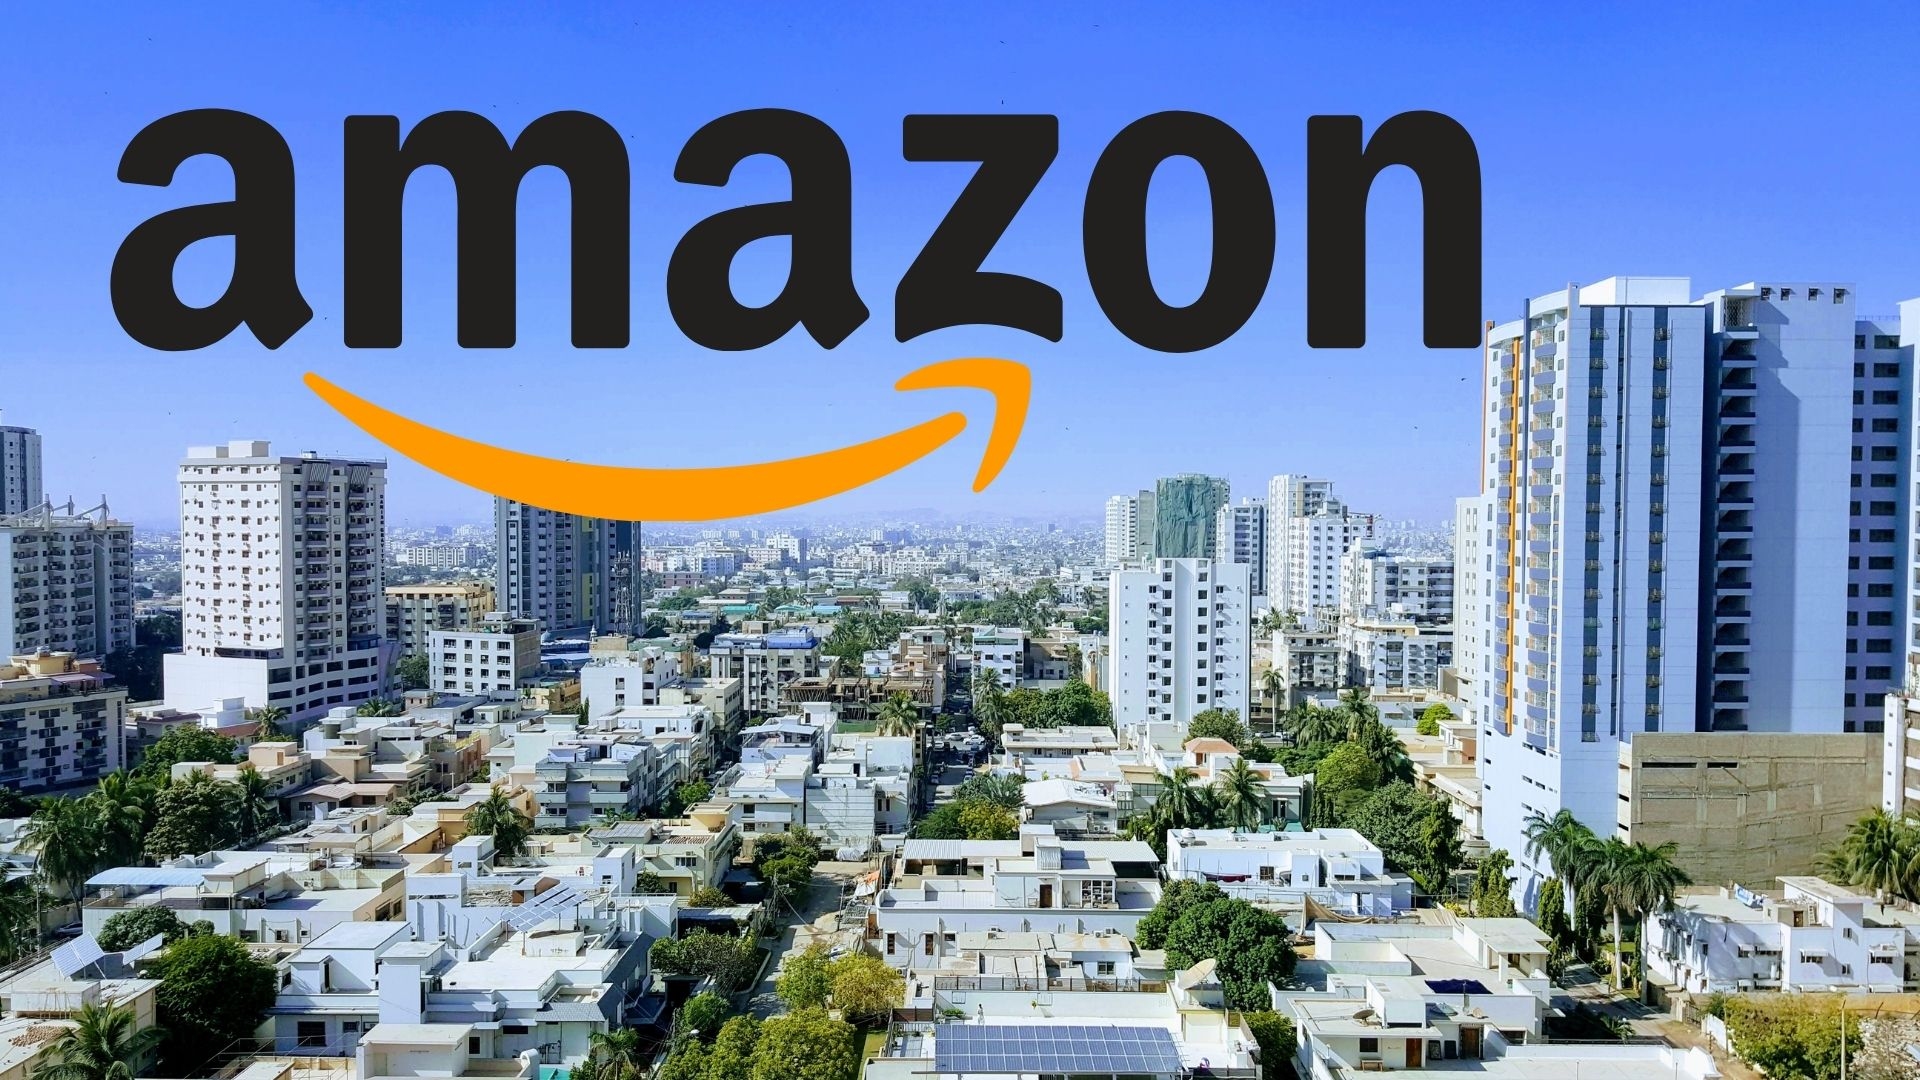 2 Million Pakistani Sellers Expected to Start Selling on Amazon in the Next 6-12 Months